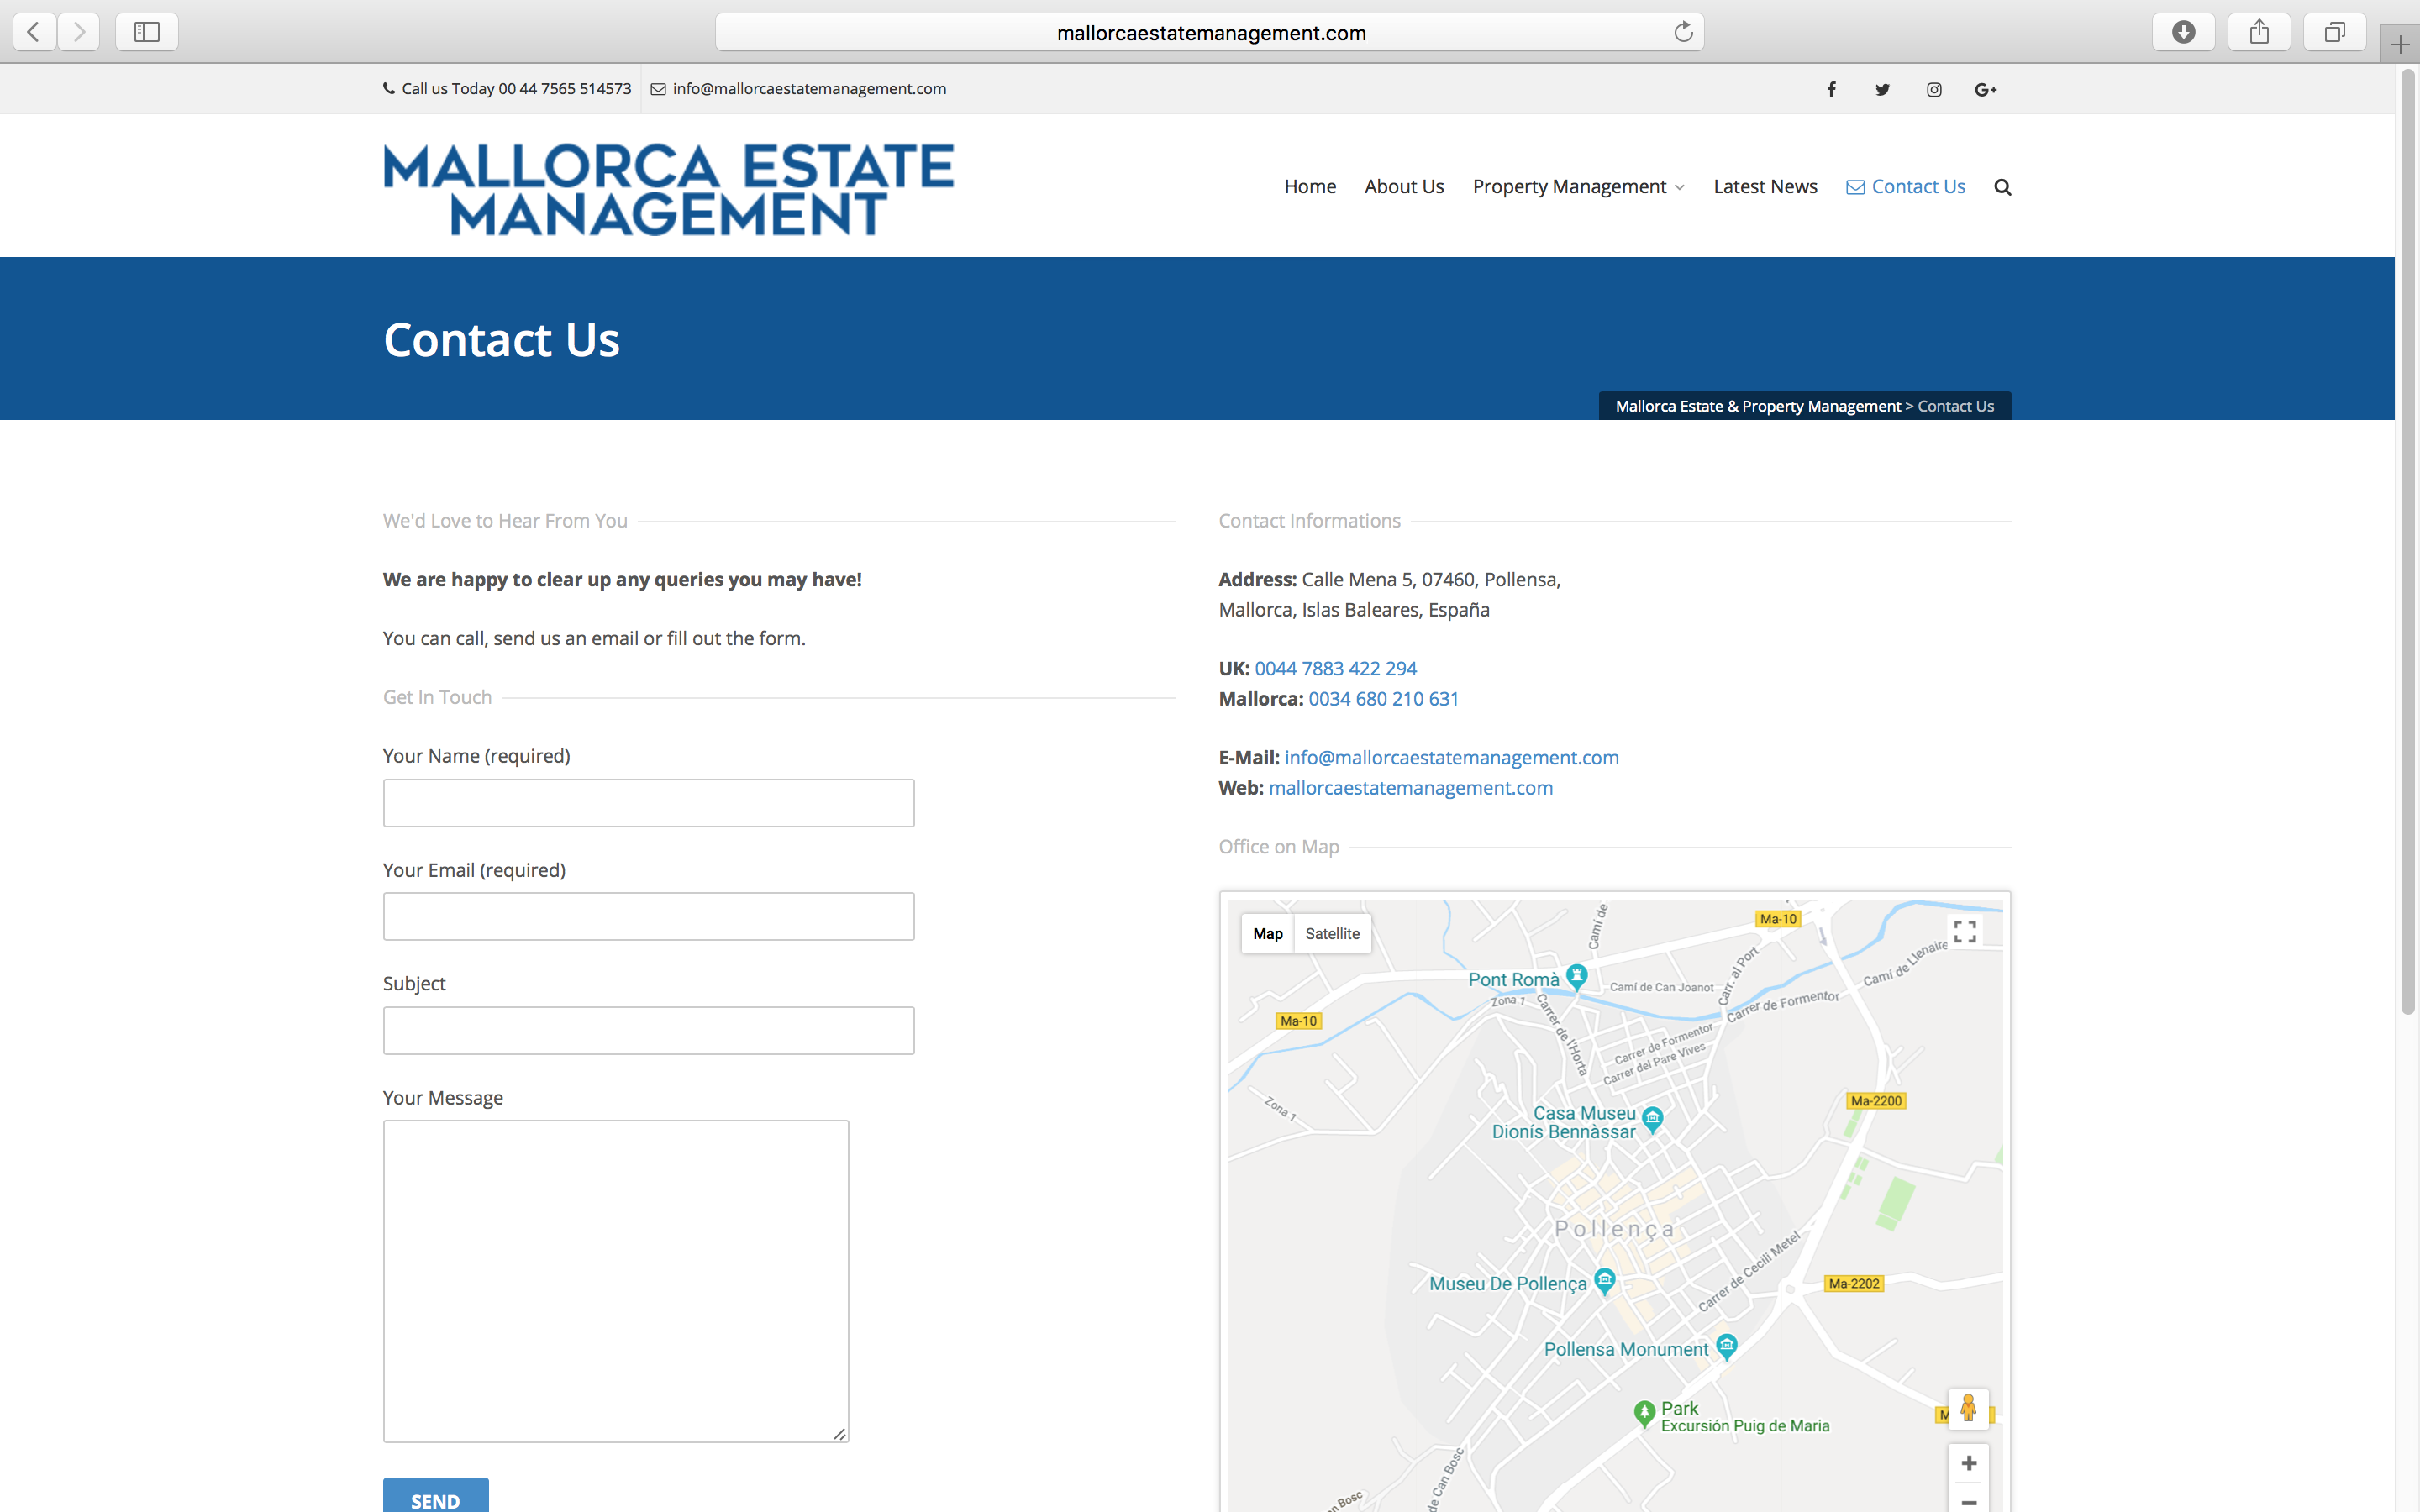 Mallorca Estate Management Website